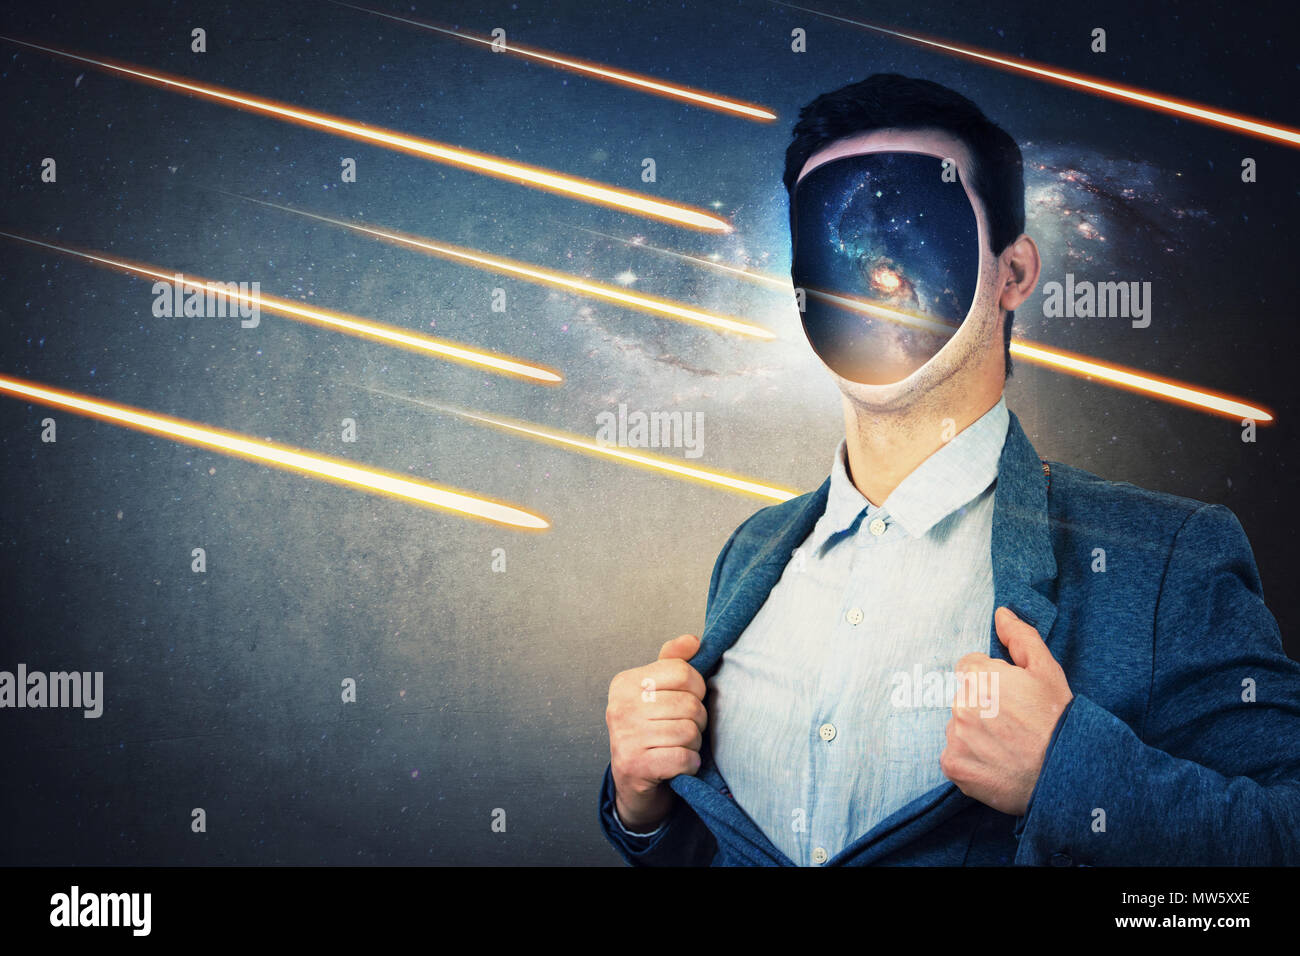 Young man with cosmos instead his face, tearing off his jacket. Space galaxy inside human head. Fantasy futuristic background with falling comets and  - Stock Image